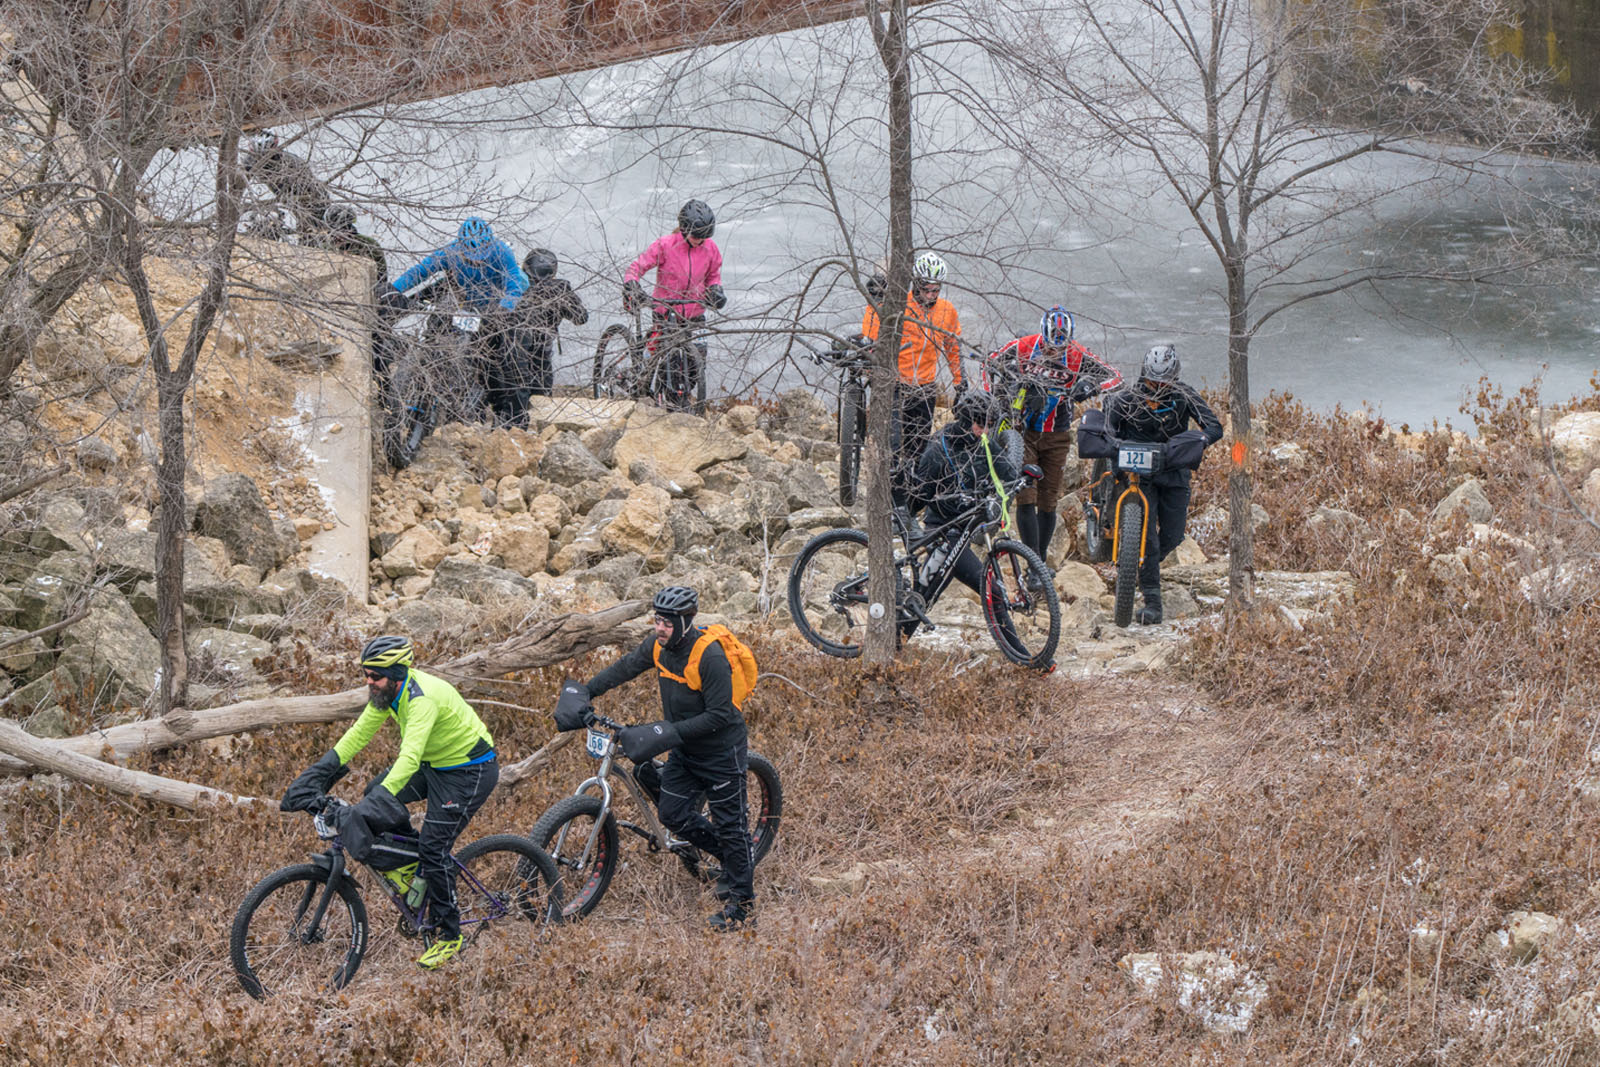 Picture of 30-mile Endurance Bike Race